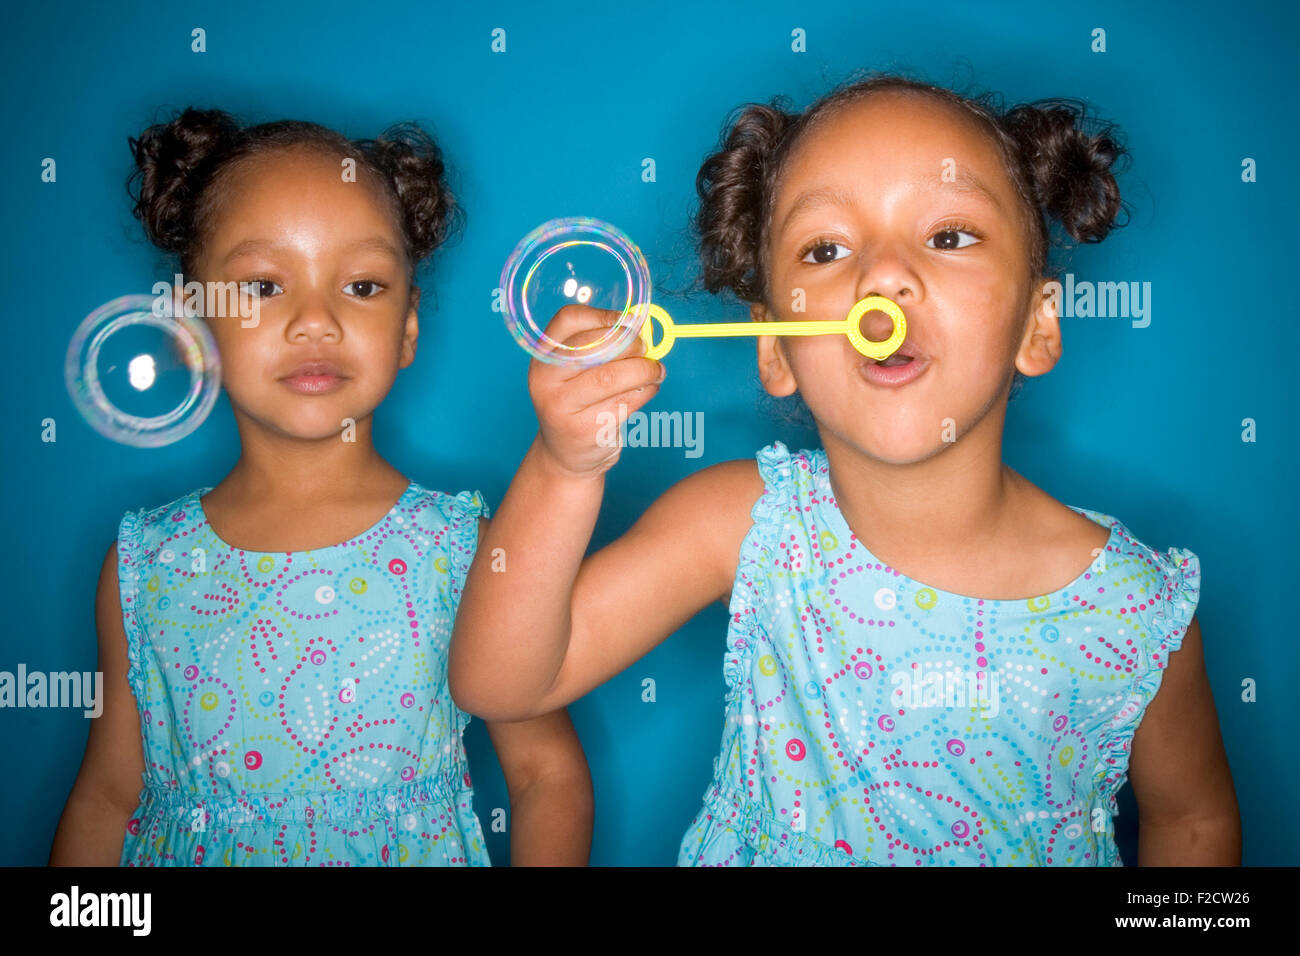 Identical twin black girls wearing matching clothes blow soap bubbles in studio setting stock image